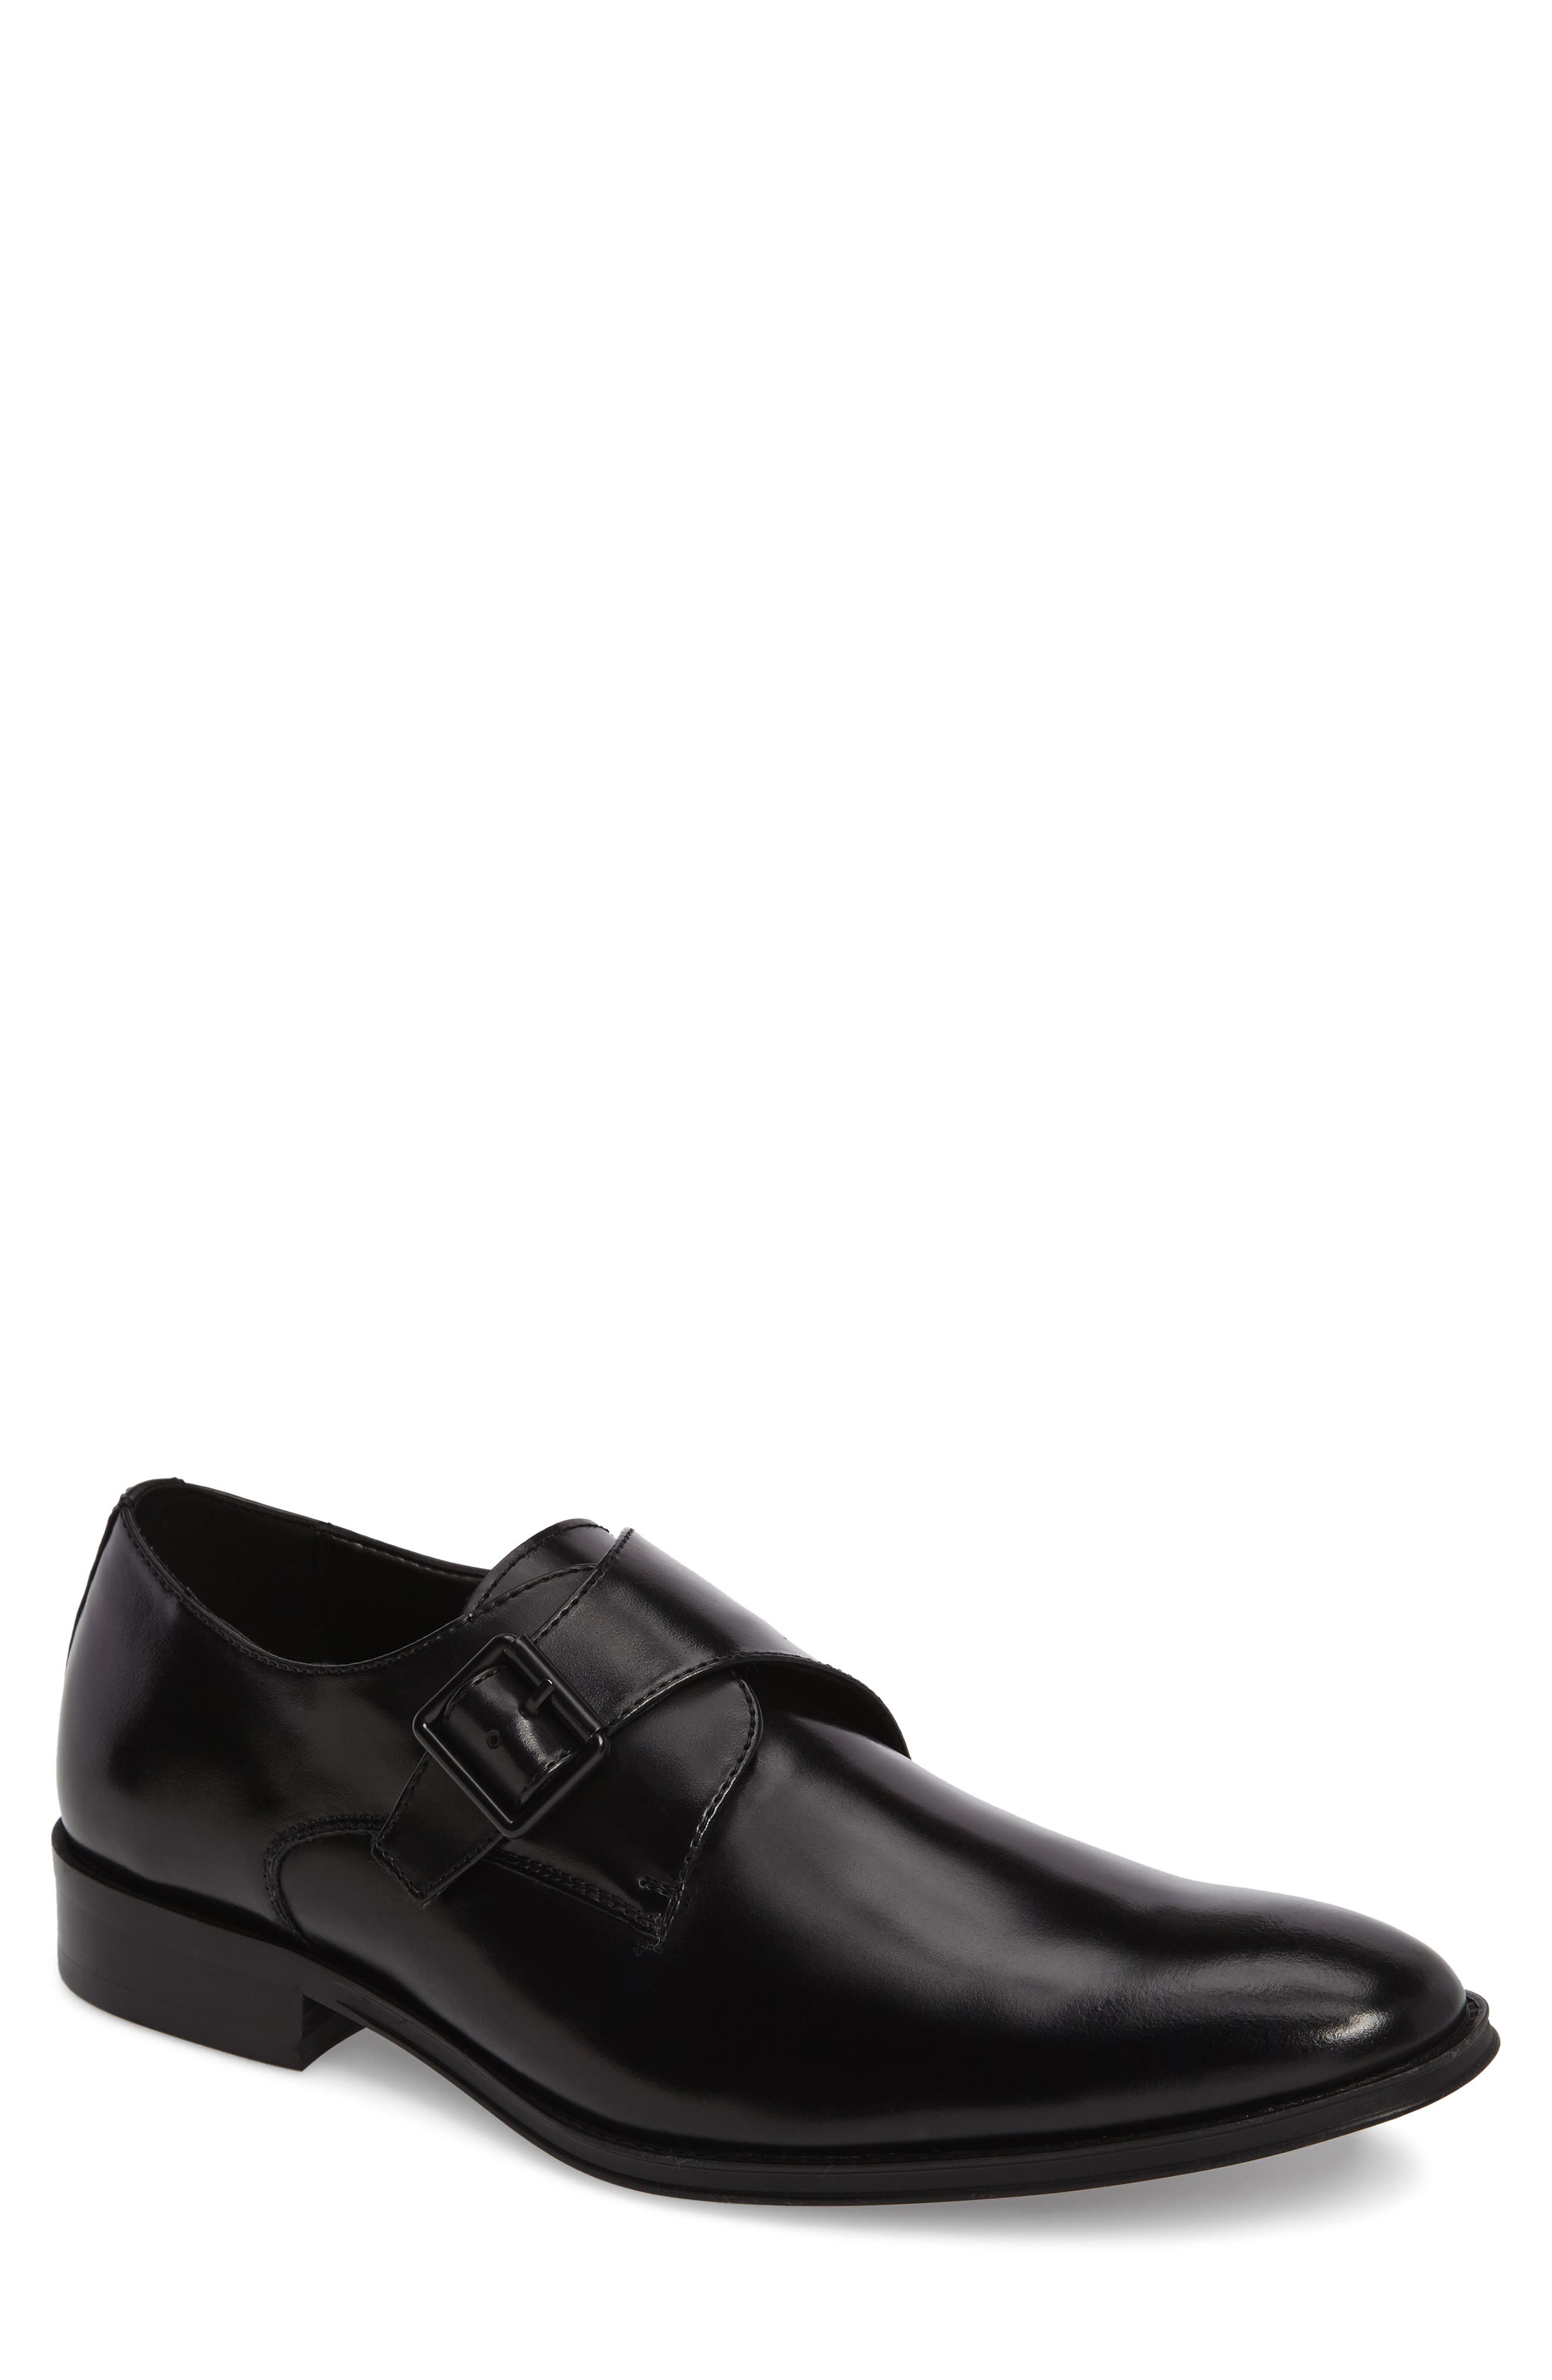 REACTION KENNETH COLE Sit-Up Monk Strap Shoe